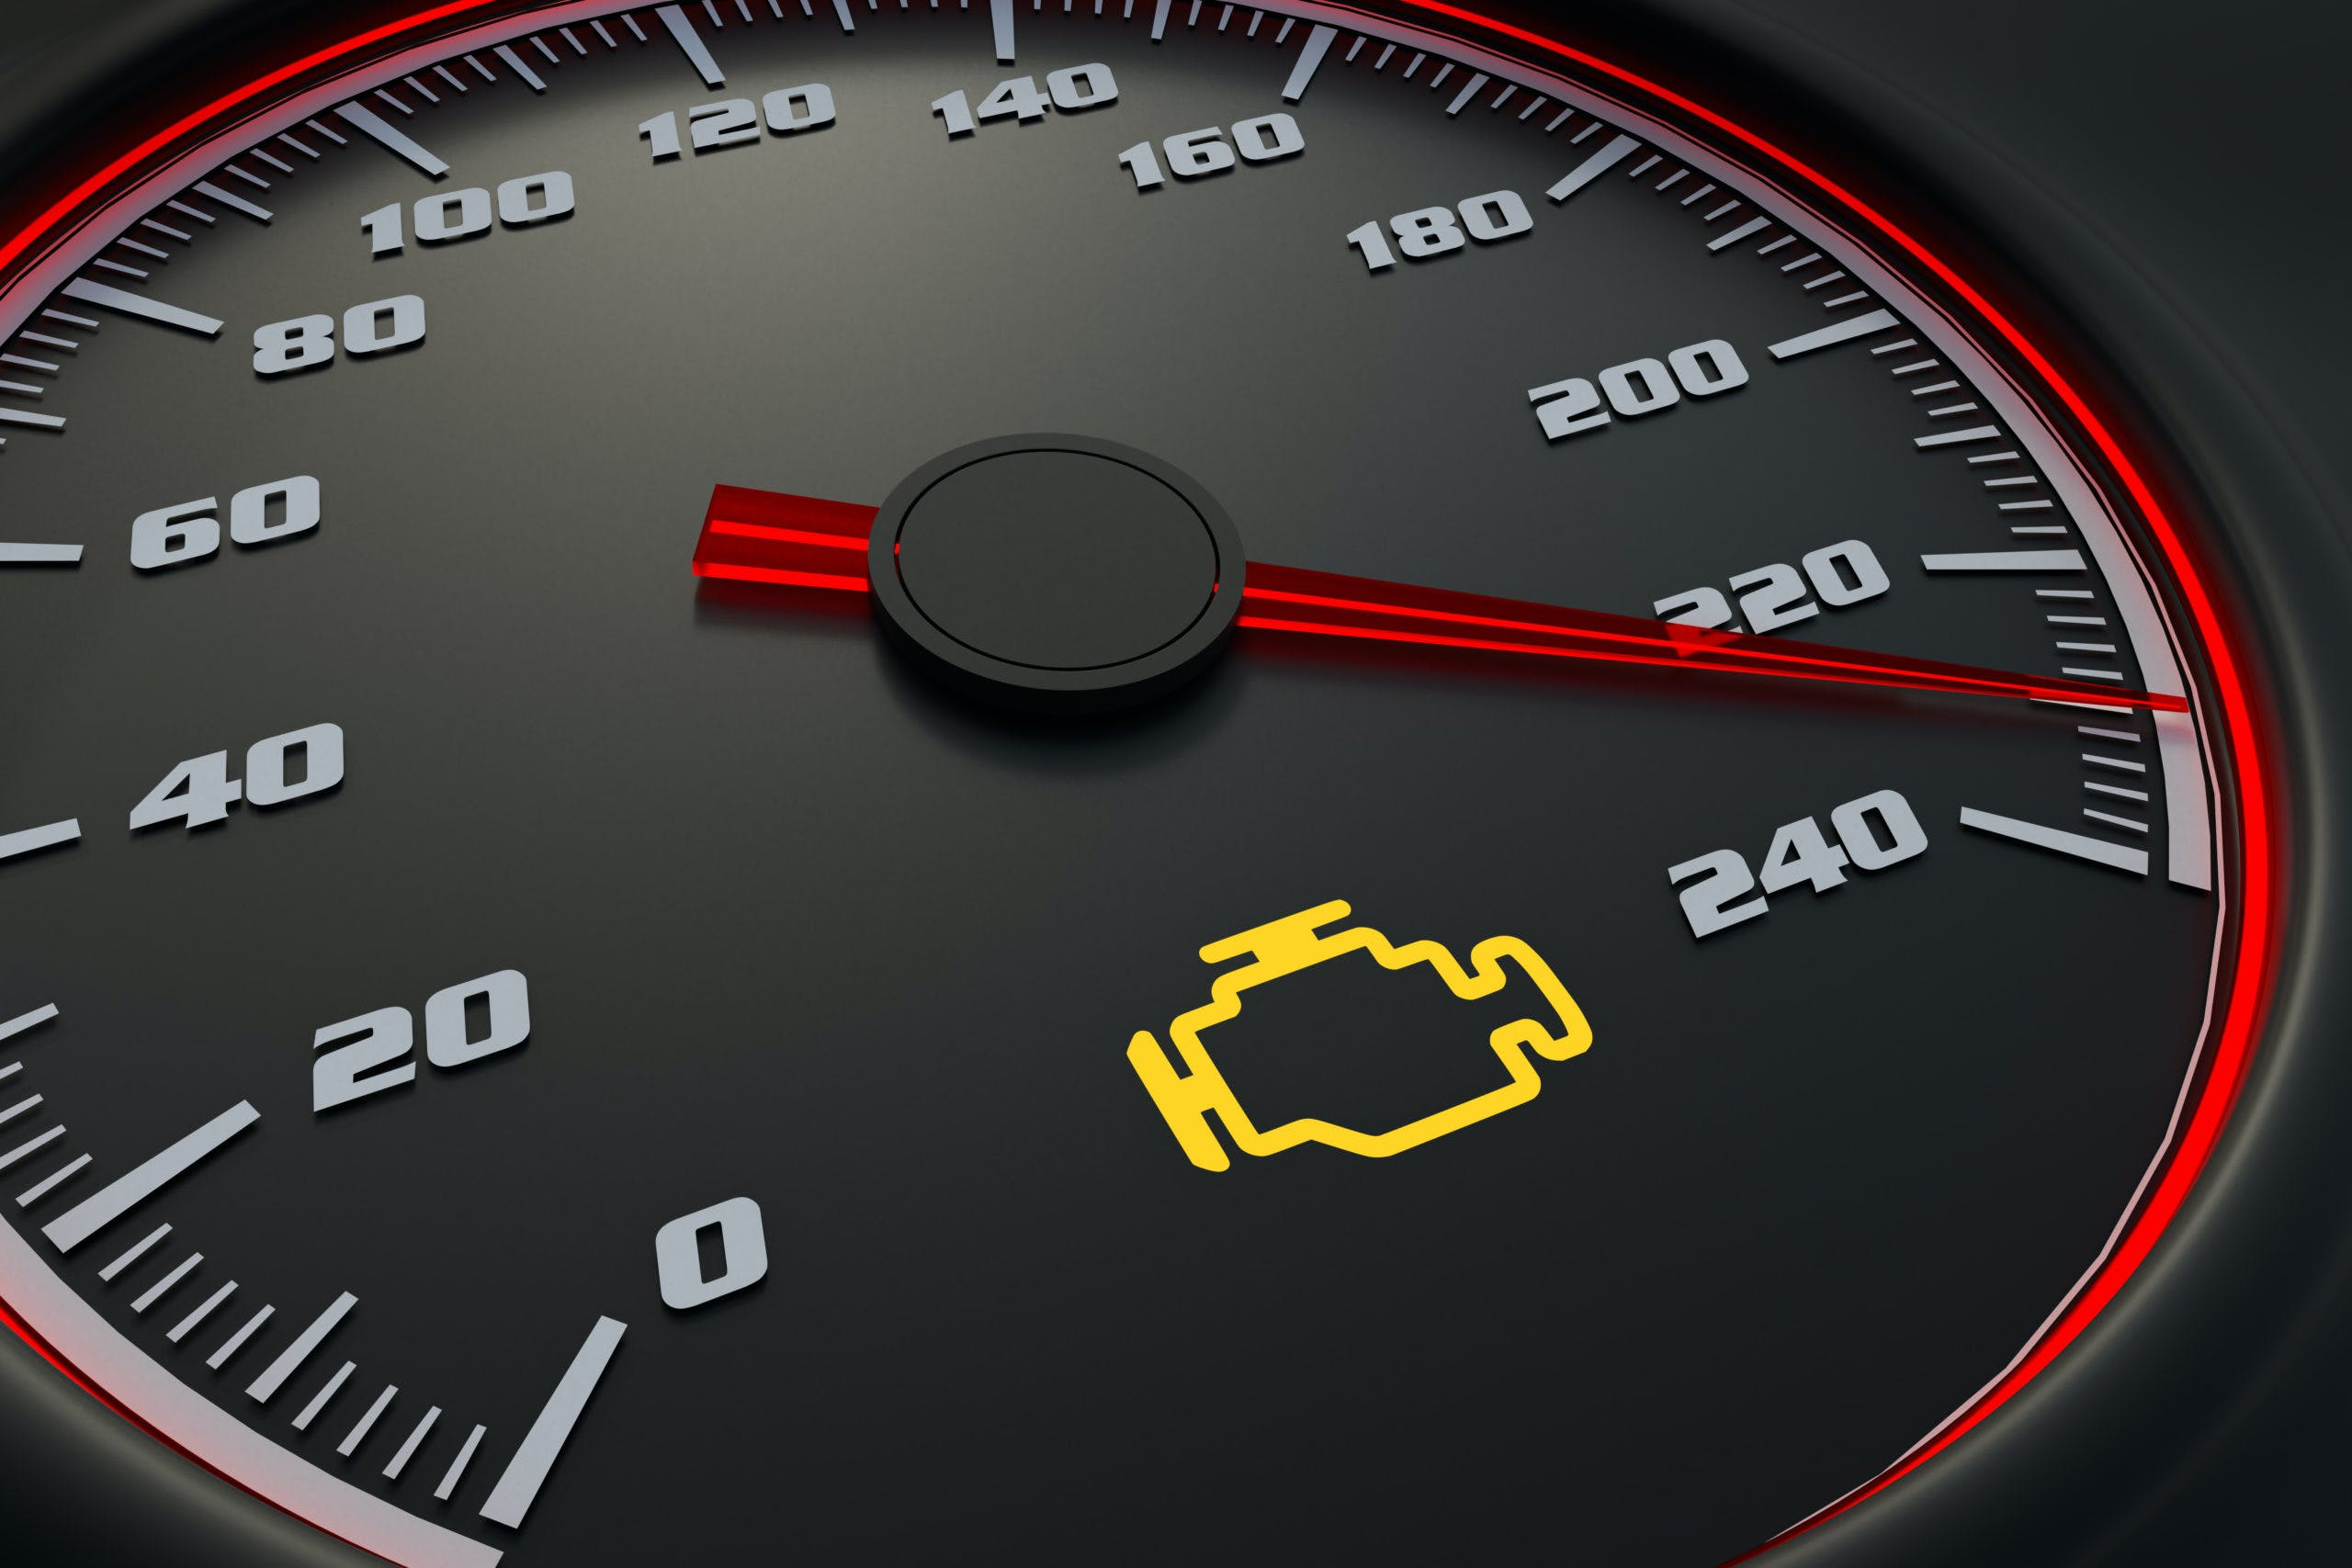 Check Engine Light On? Here's What to Do